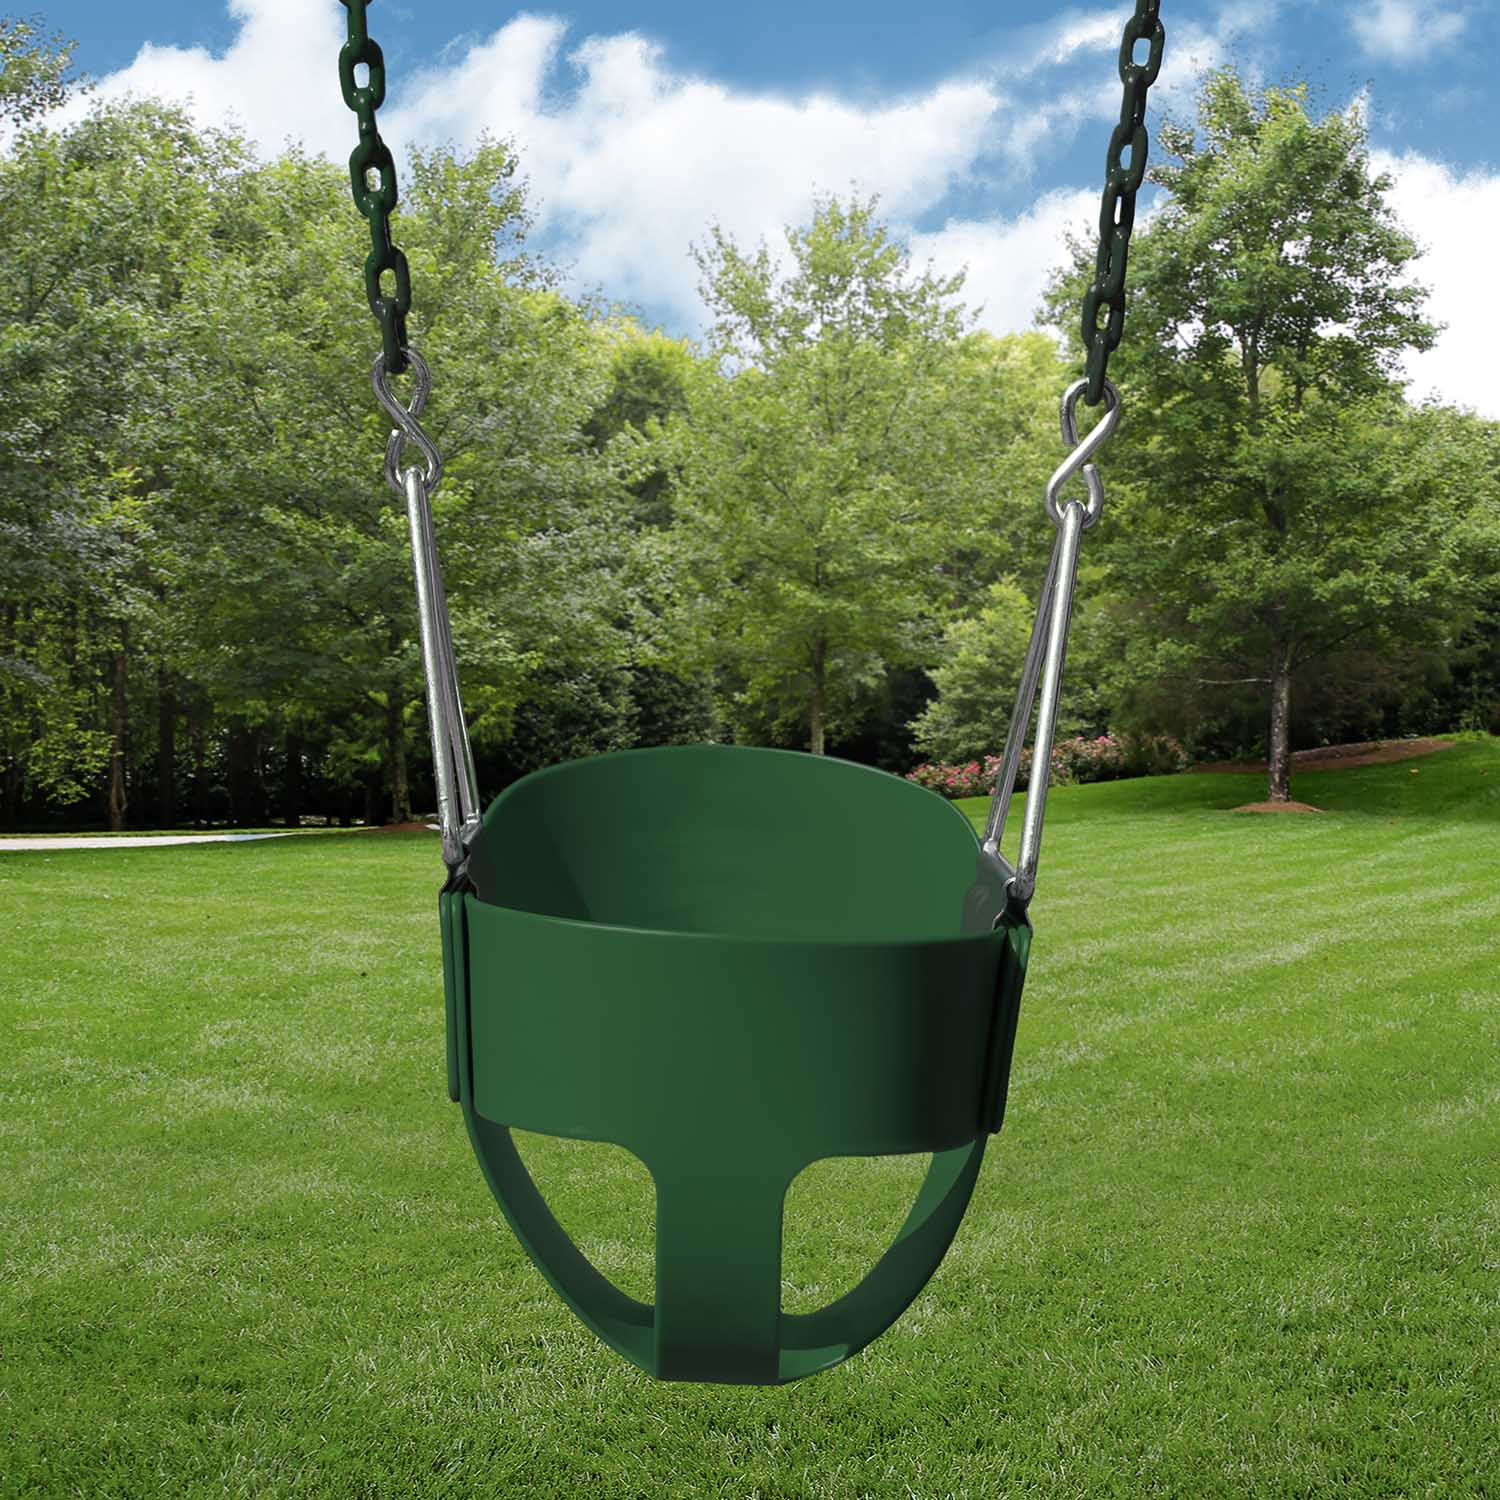 Gorilla-Playsets-Full-Bucket-Swing-Green